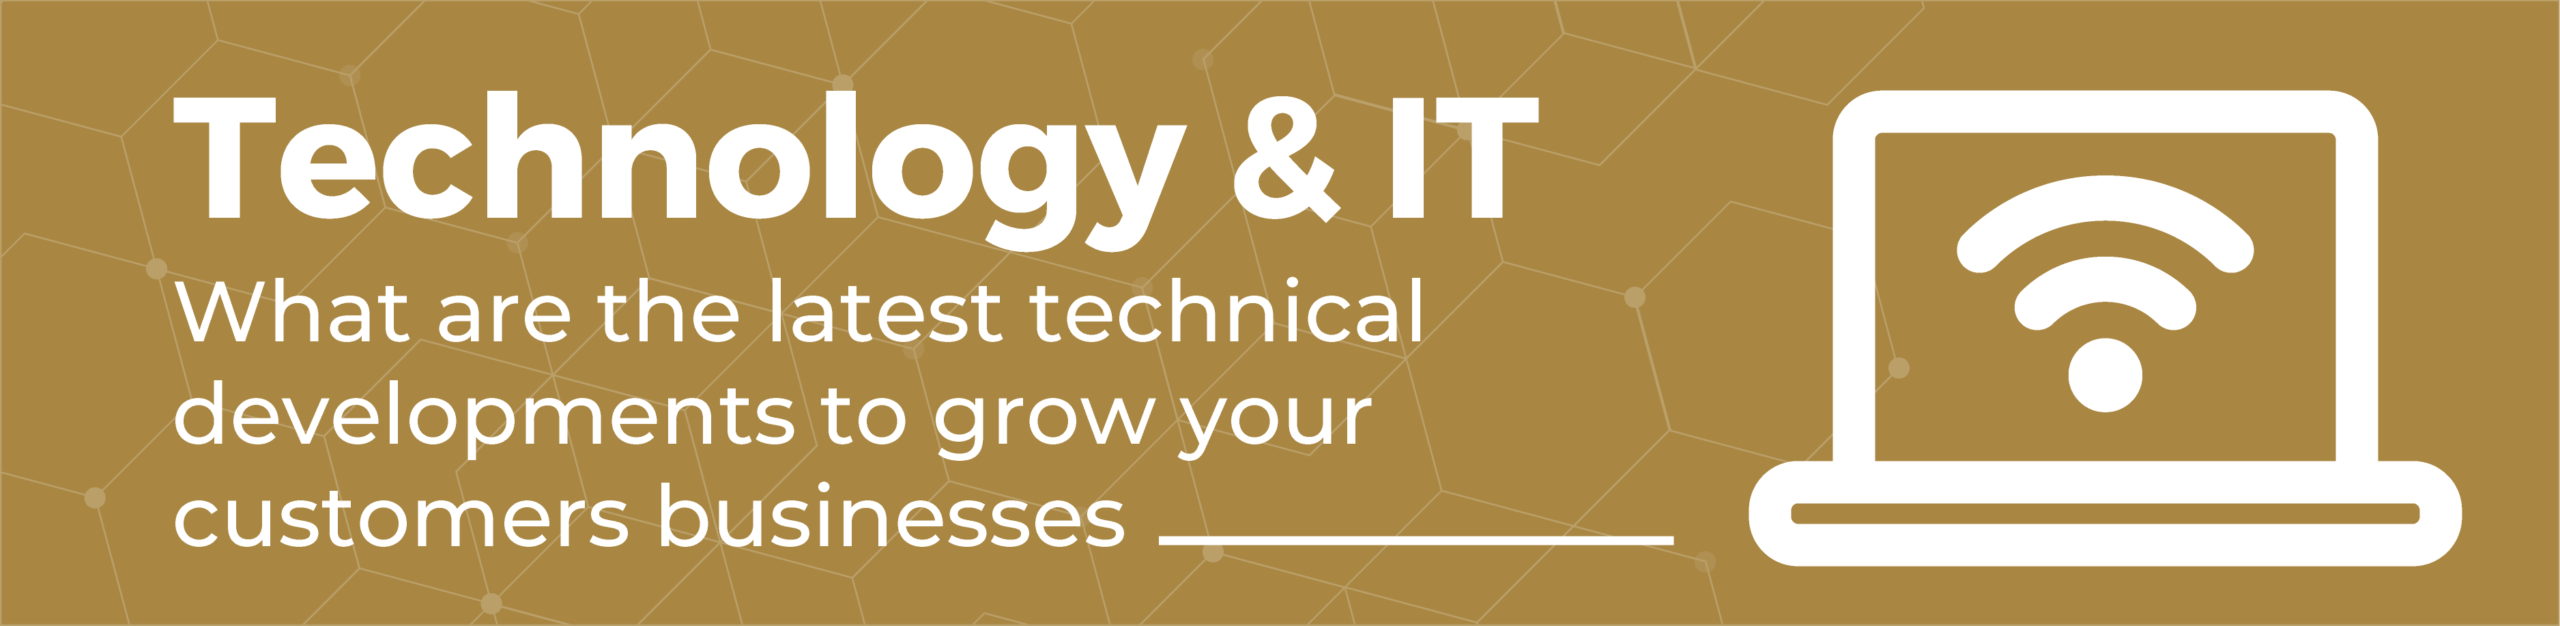 Tech & IT: what are the latest technical developments to grow your customers businesses.